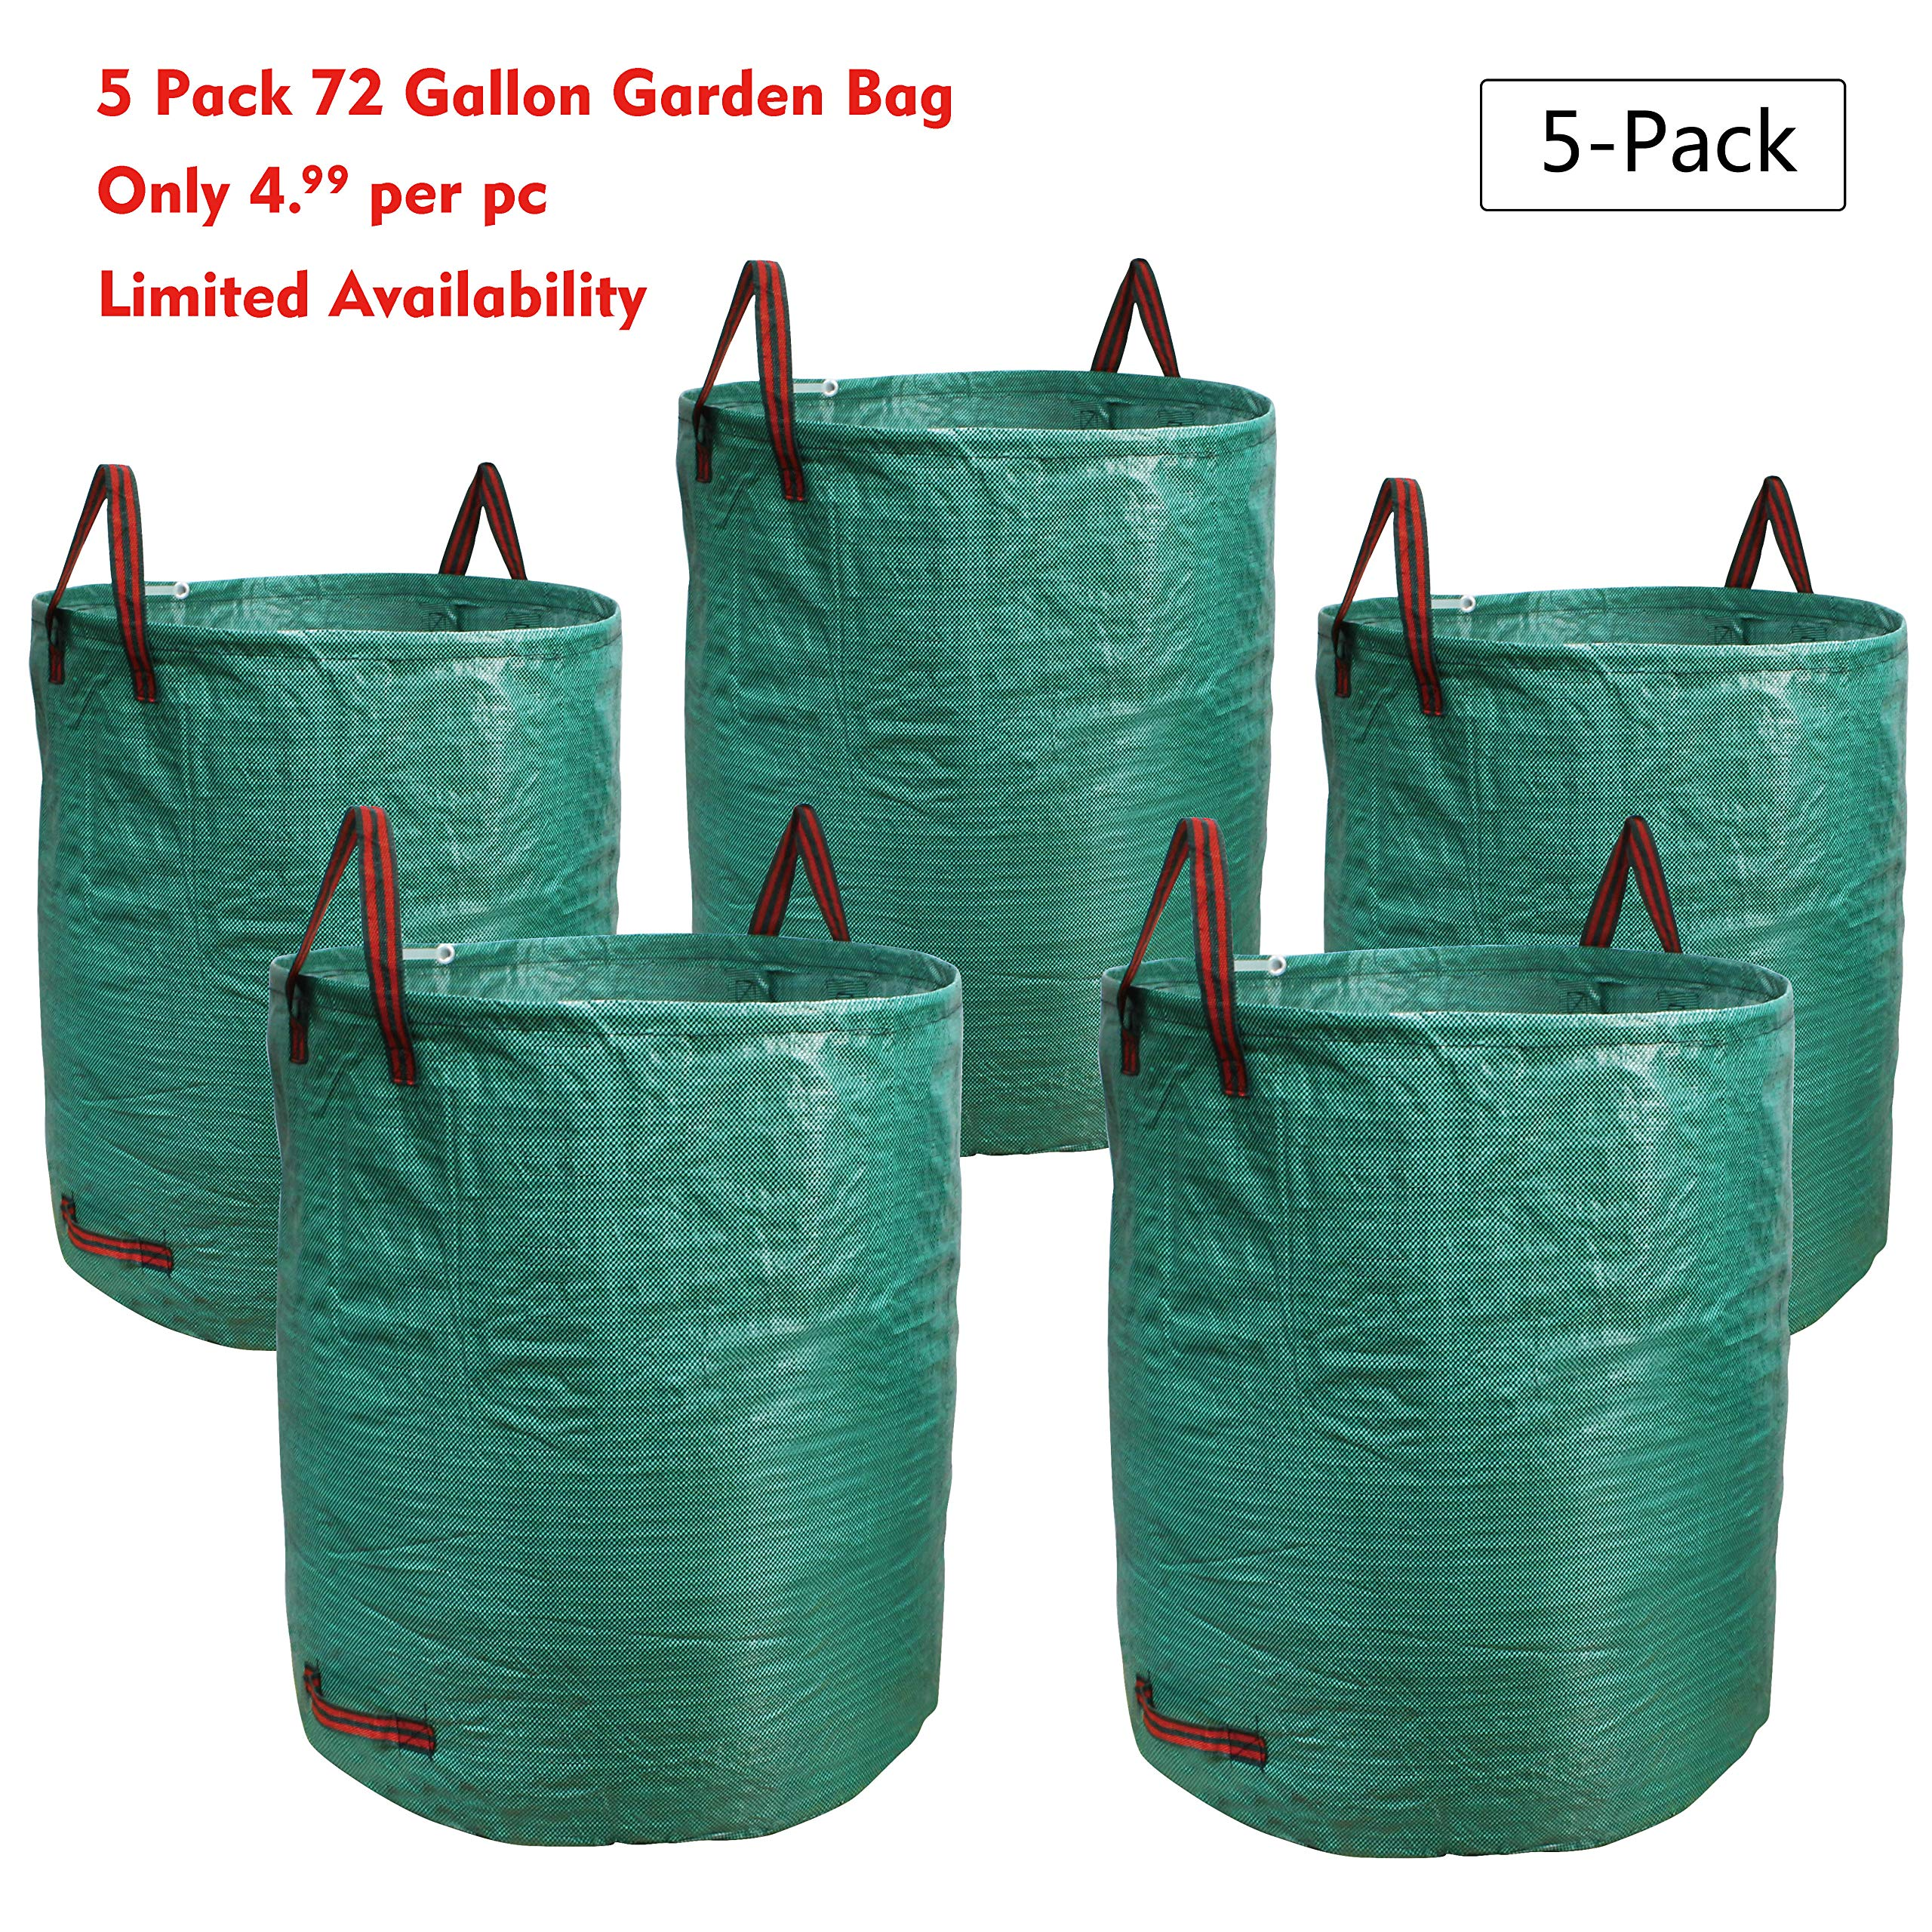 PHYEX 5-Pack 72 Gallons Garden Bag Heavy Duty Gardening Bags, Lawn Pool Garden Leaf Waste Rubbish Plants Grass Bag (5 X 72Gallons) by PHYEX